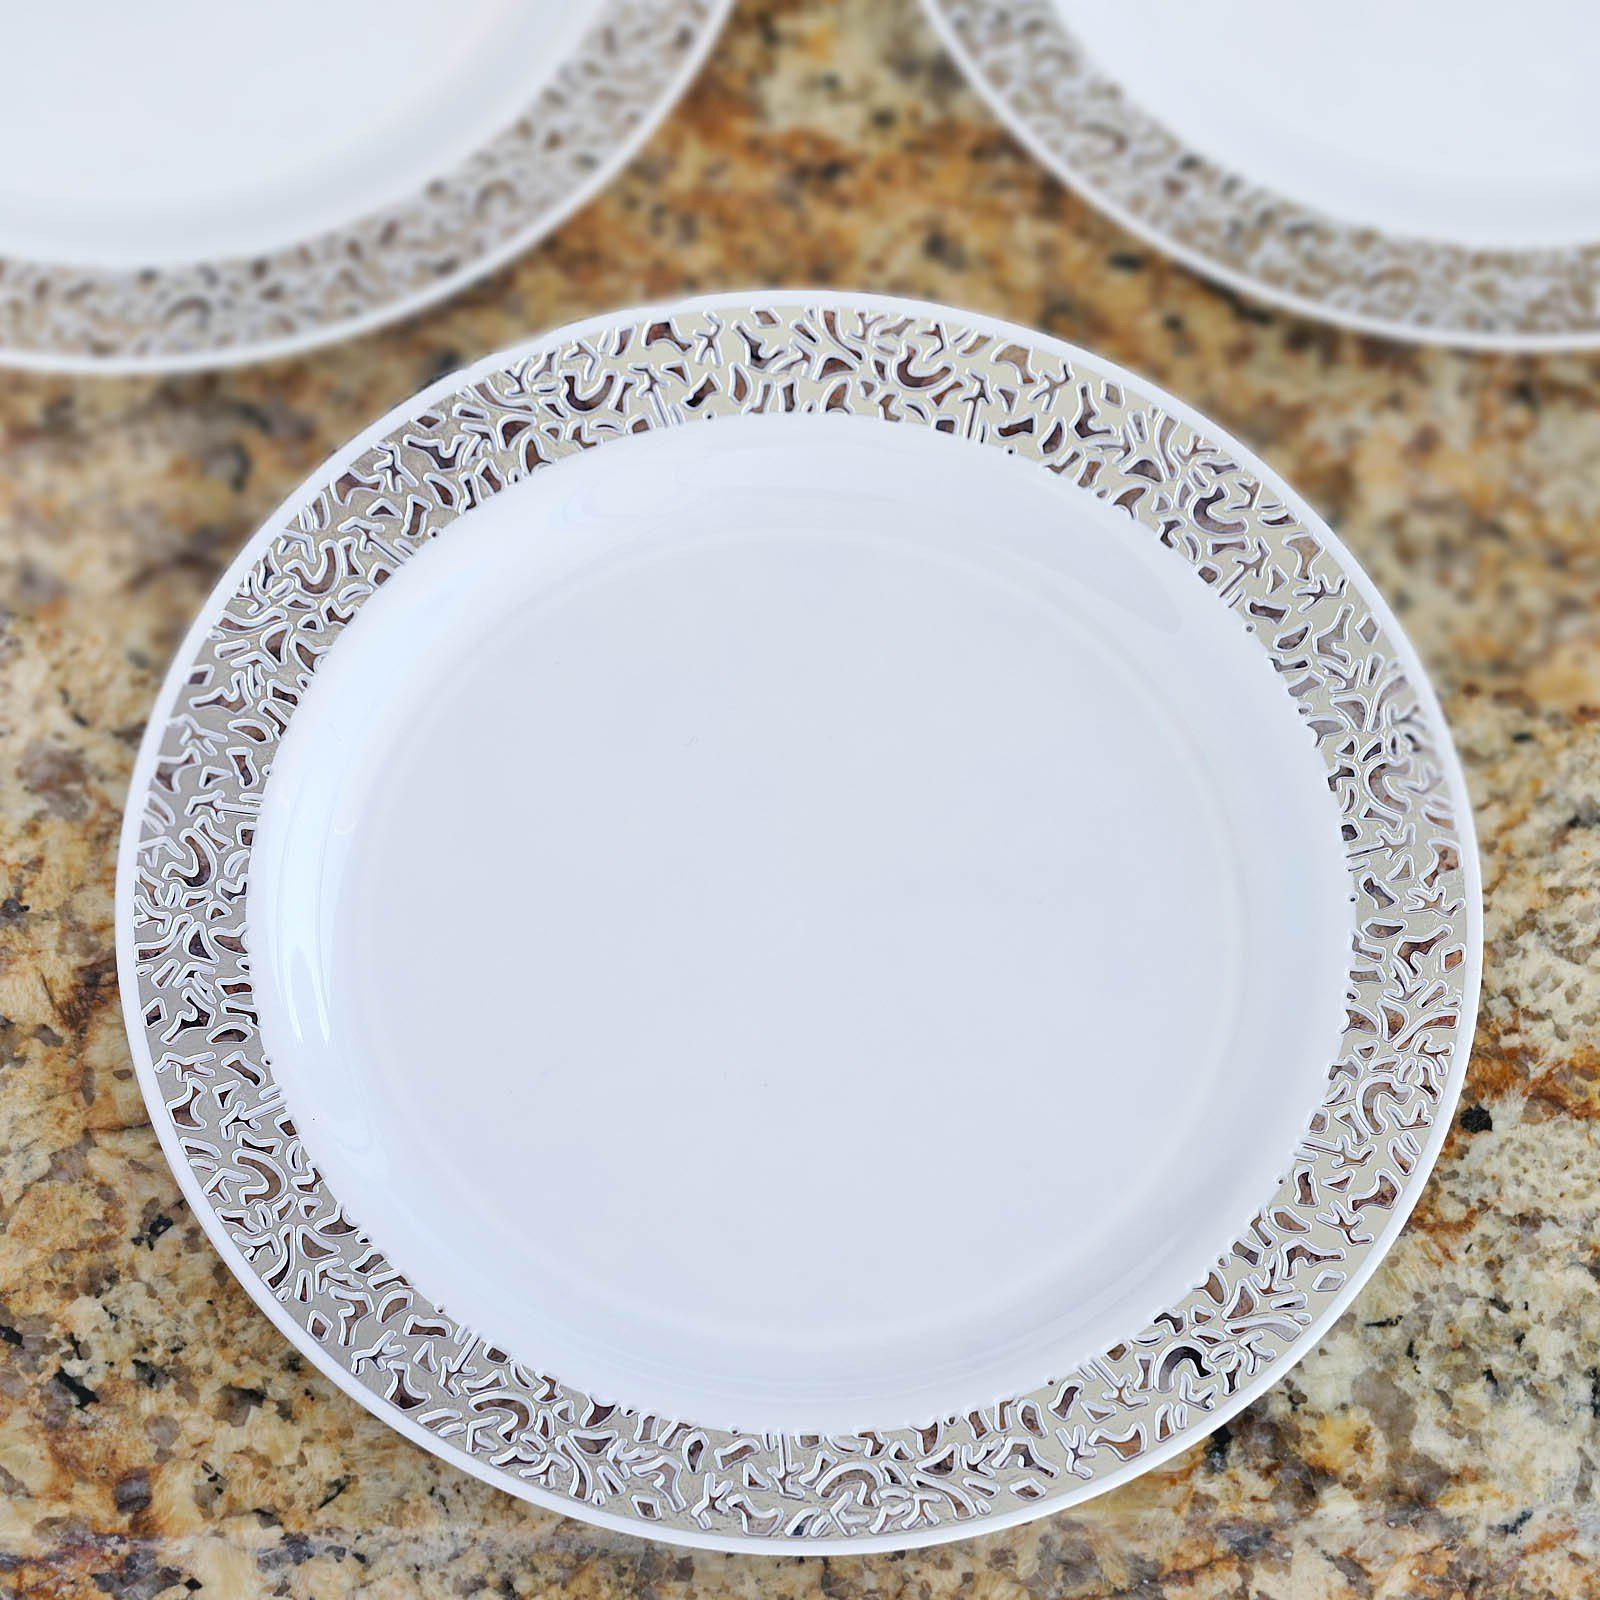 ... 10 Pack - White with Silver Trimmed 9  Round Disposable Plate - Designer Lace collection ...  sc 1 st  Tablecloths Factory & 10 Pack 9